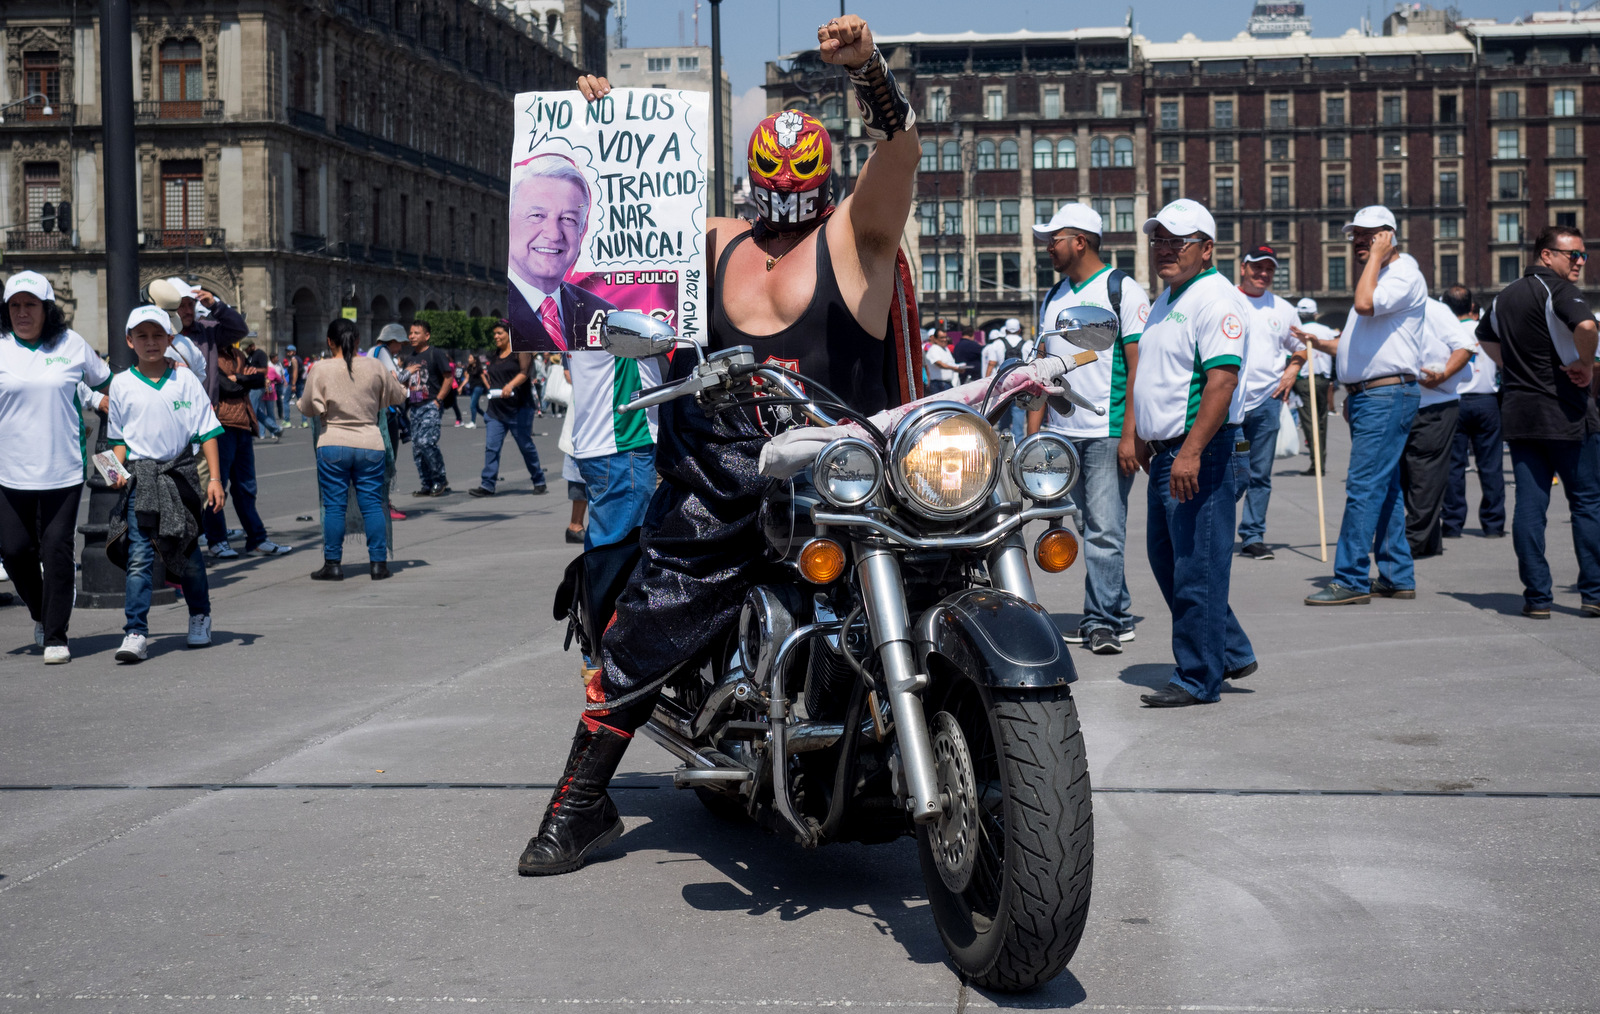 A supporter of the Mexican Union of Electrical Workers in his disguise as a luchador wrestler holds a sign showing support for leftist presidential candidate Andres Manuel Lopez Obrador in the Zocalo of Mexico City, May 1, 2018. (Photo: José Luis Granados Ceja)